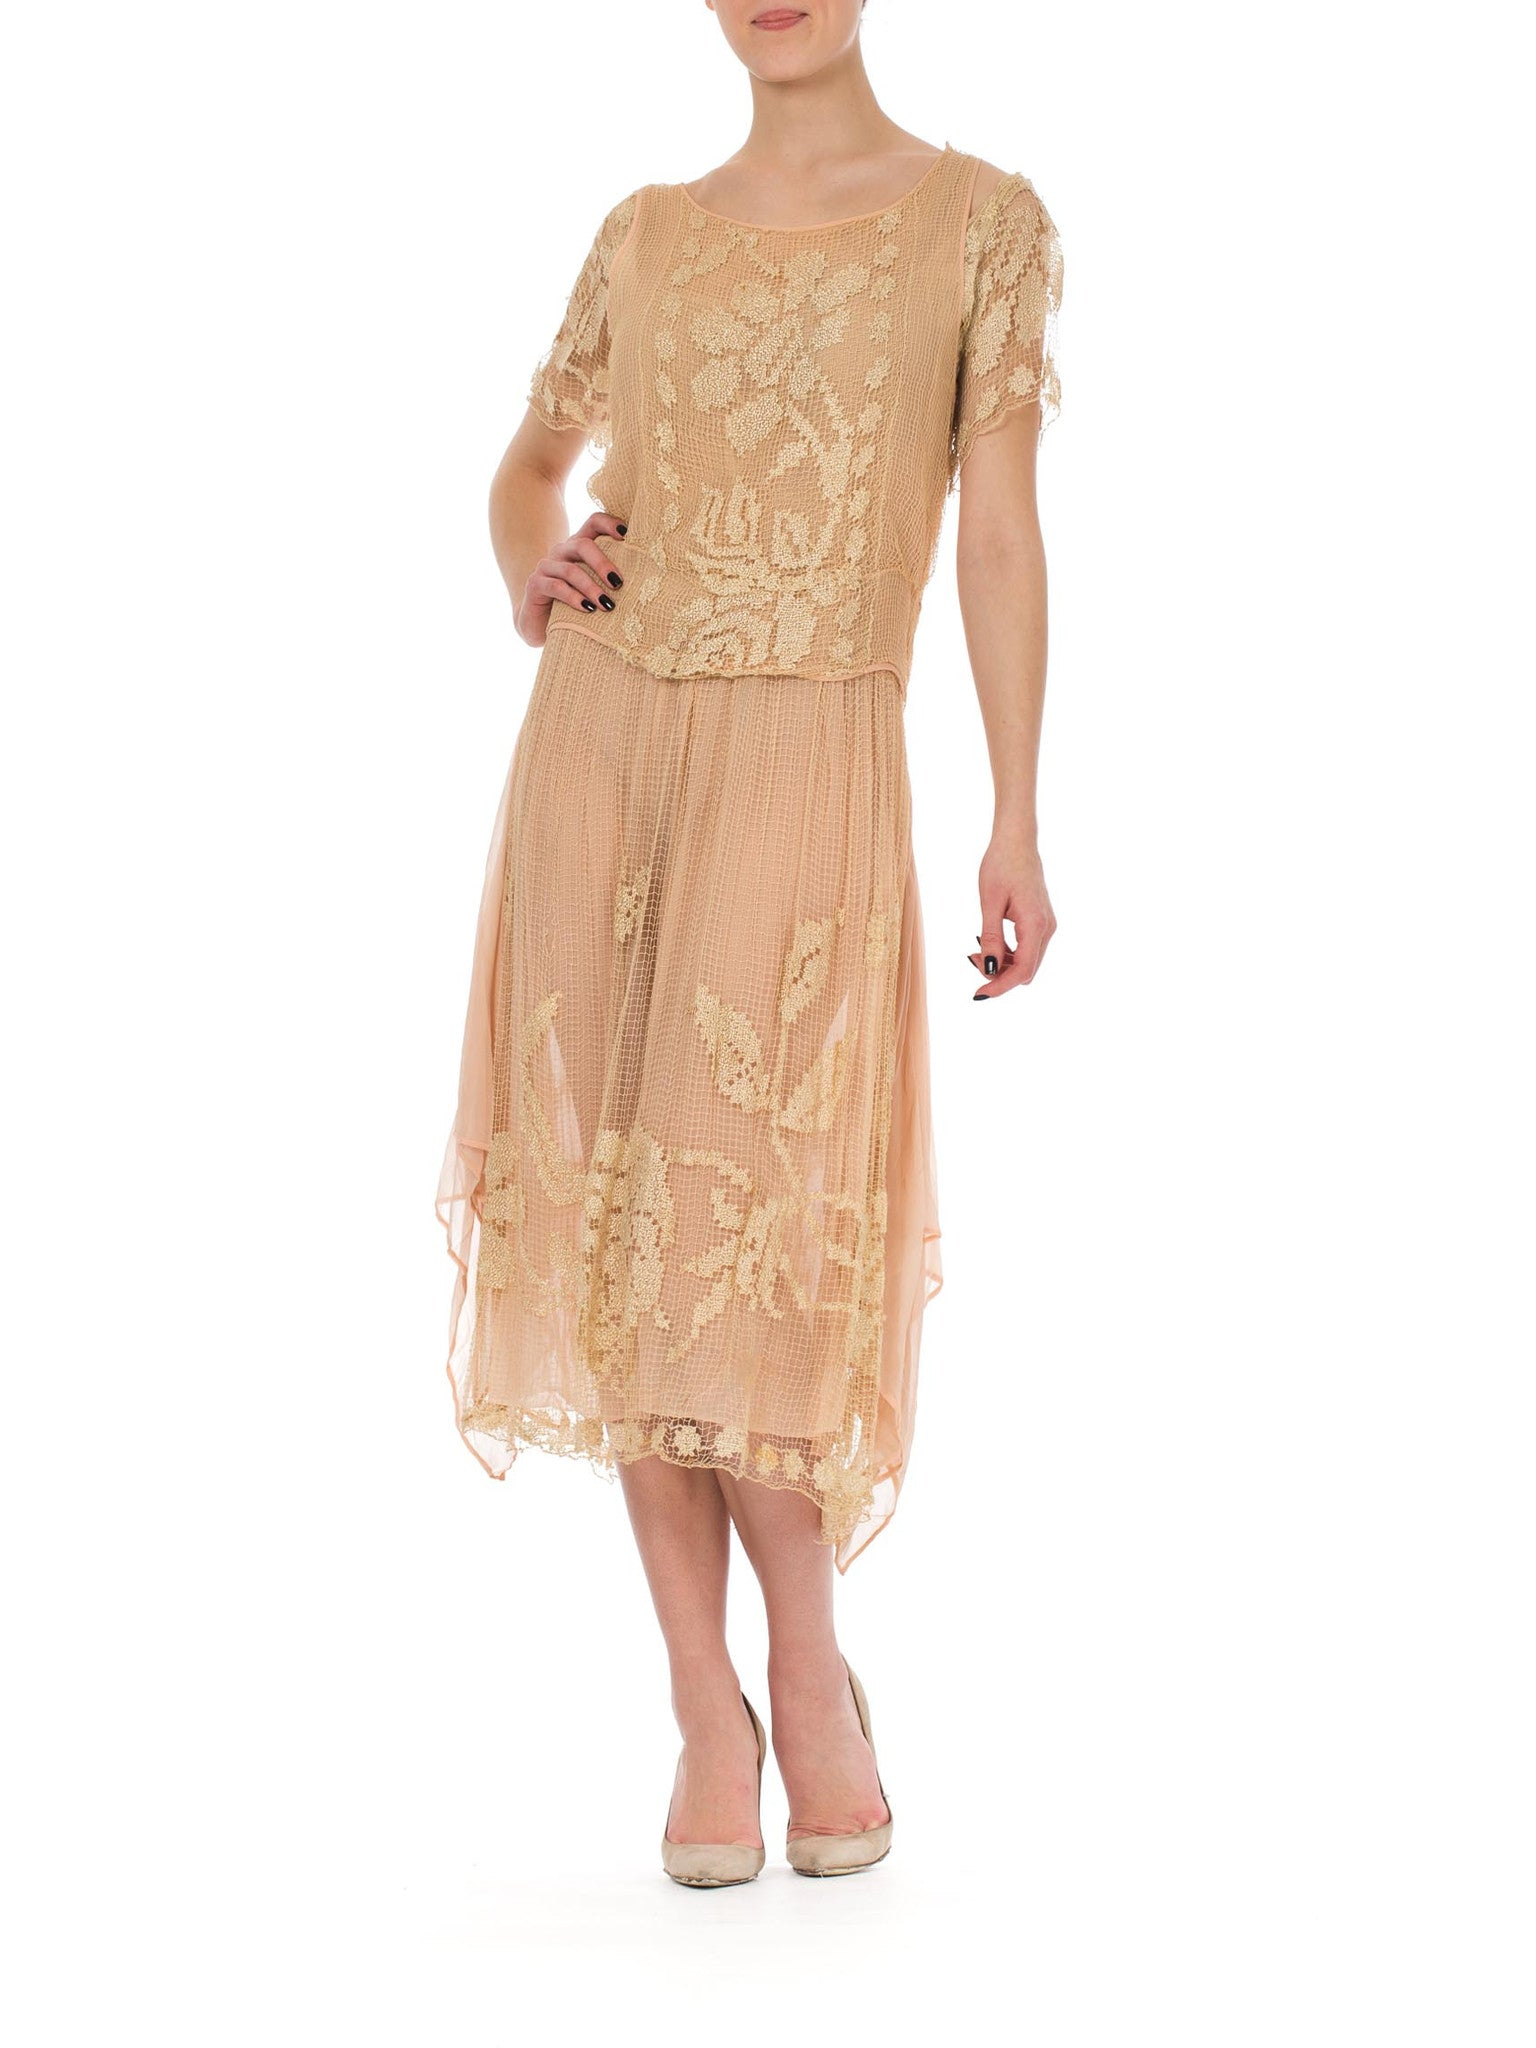 1920s Romantic Filet Lace Silk Dress